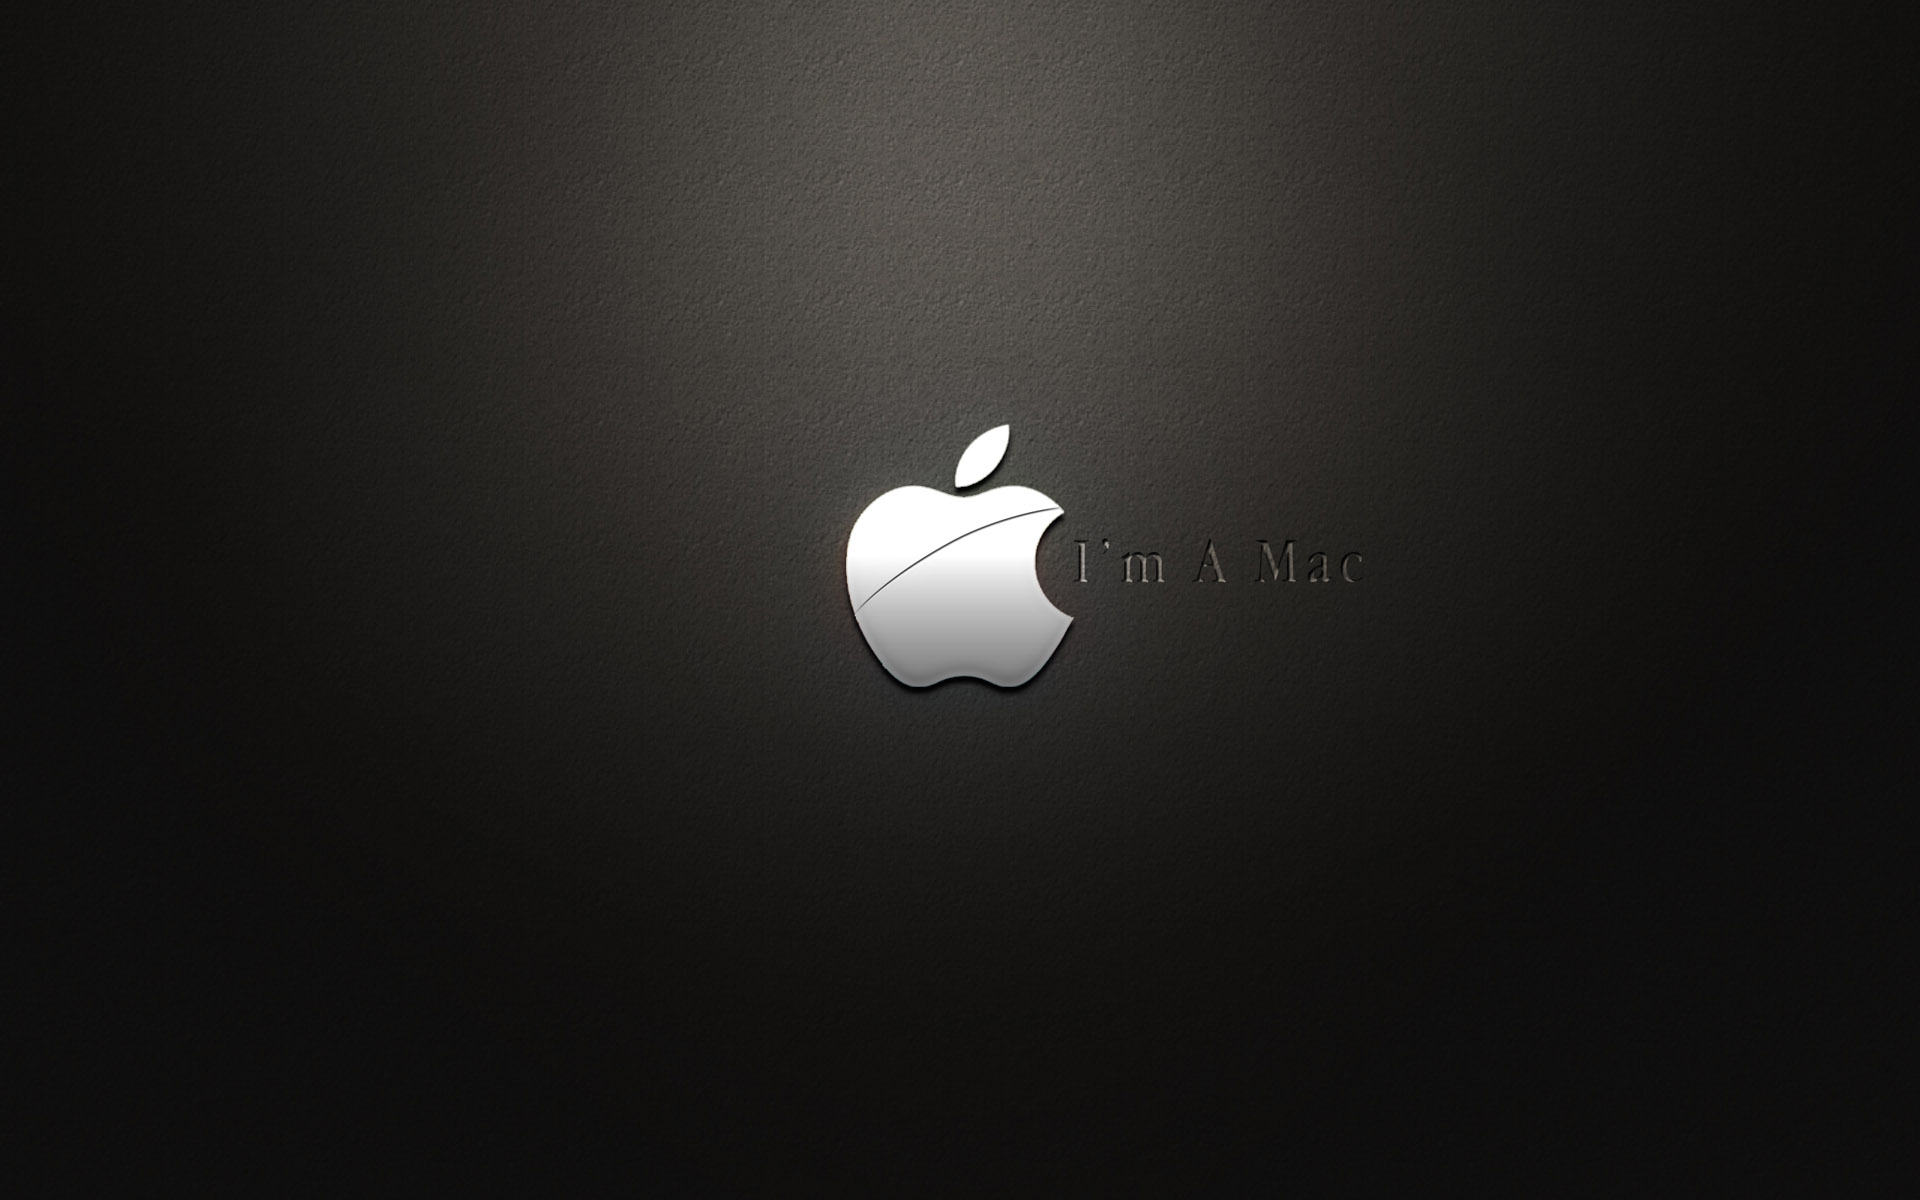 Apple wallpaper high definition 20939